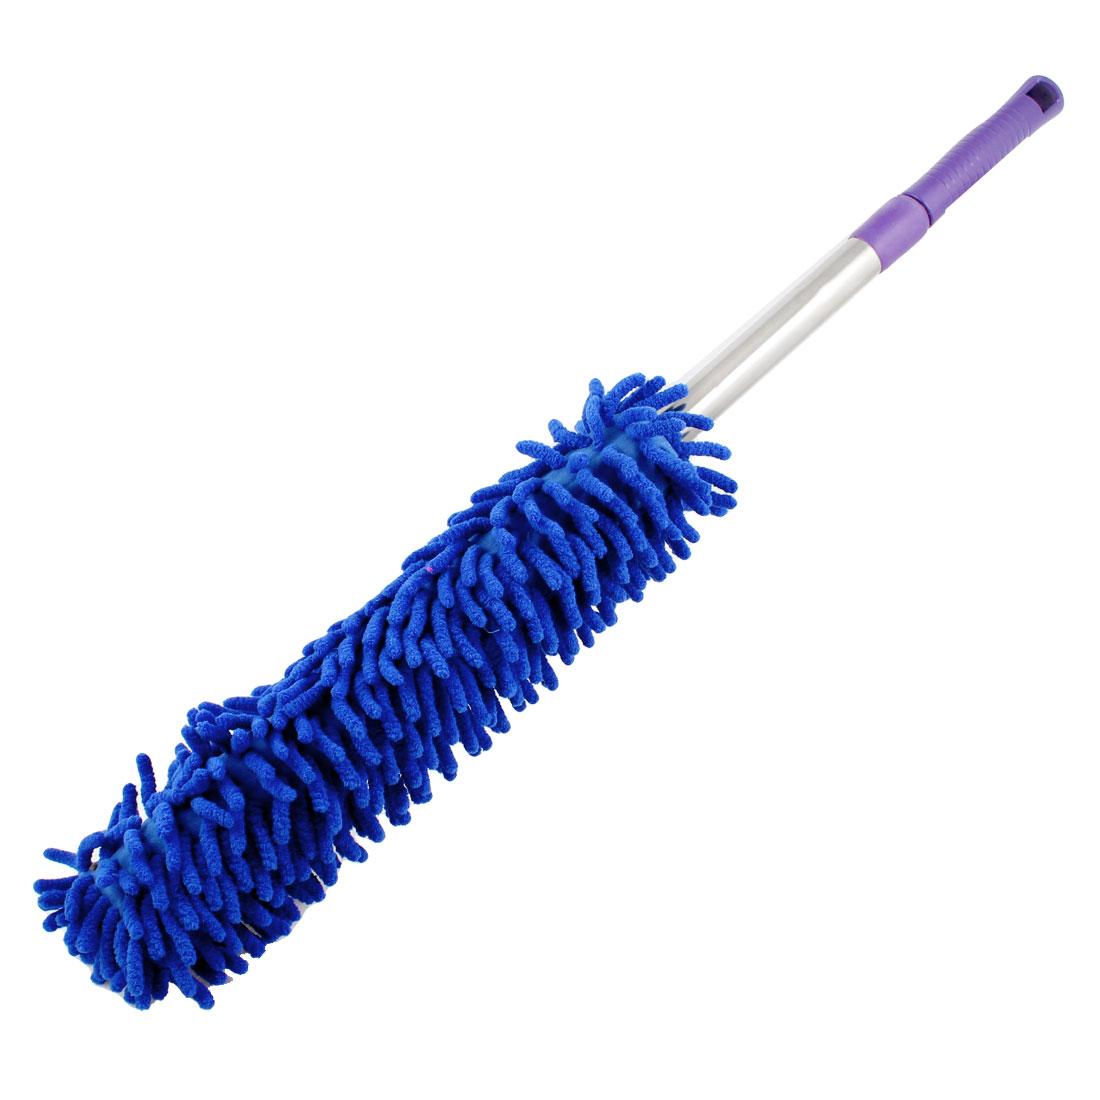 Unique Bargains Microfiber Car Household Cleaning Duster Brush Tool Dodger Blue 24.4""